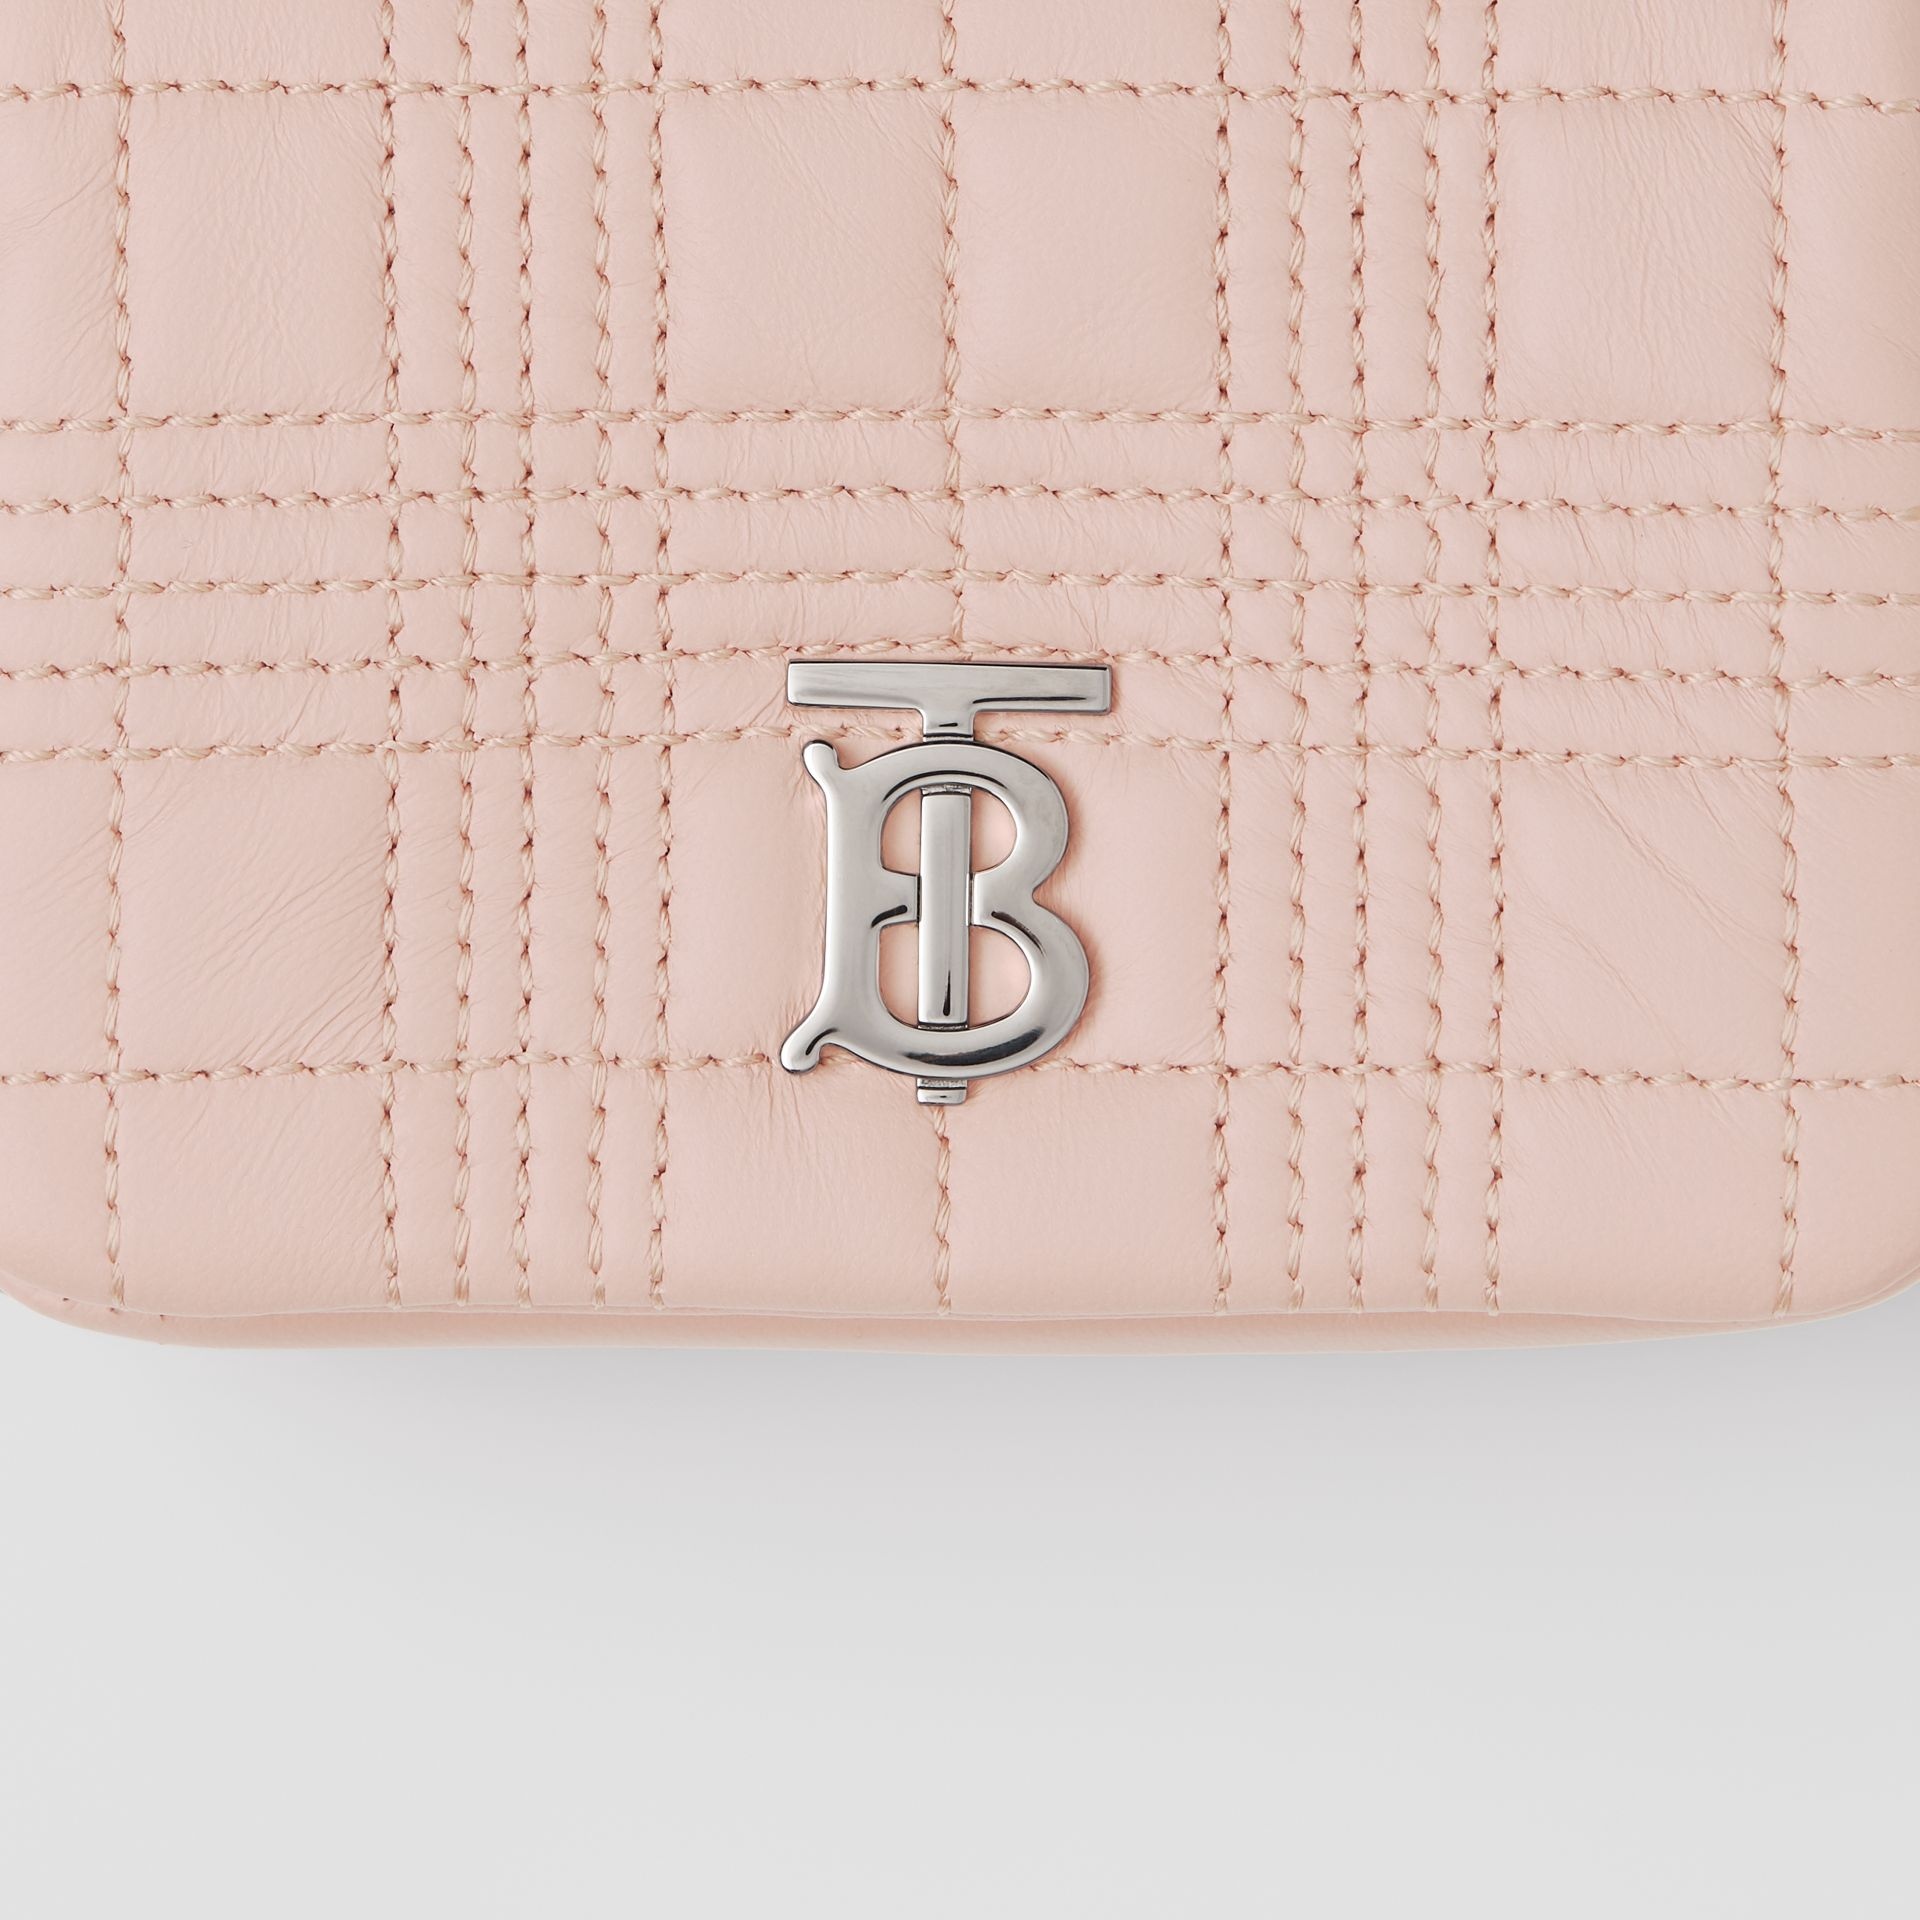 Micro Quilted Lambskin Lola Bag in Blush Pink - Women | Burberry United Kingdom - gallery image 1